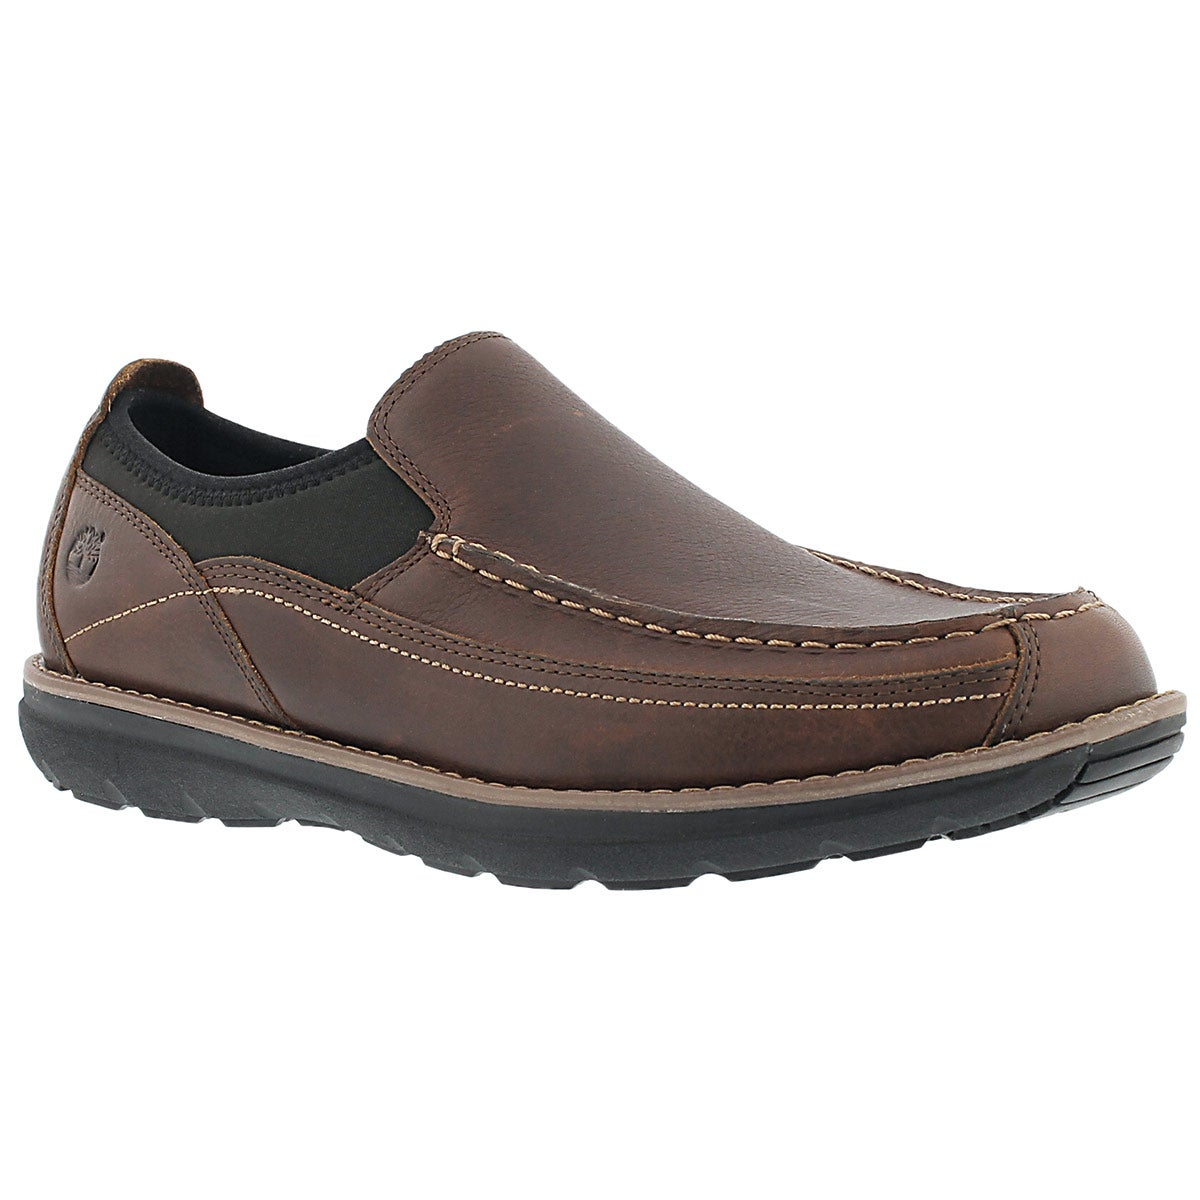 Mns Barrett Park brn slip on casual shoe